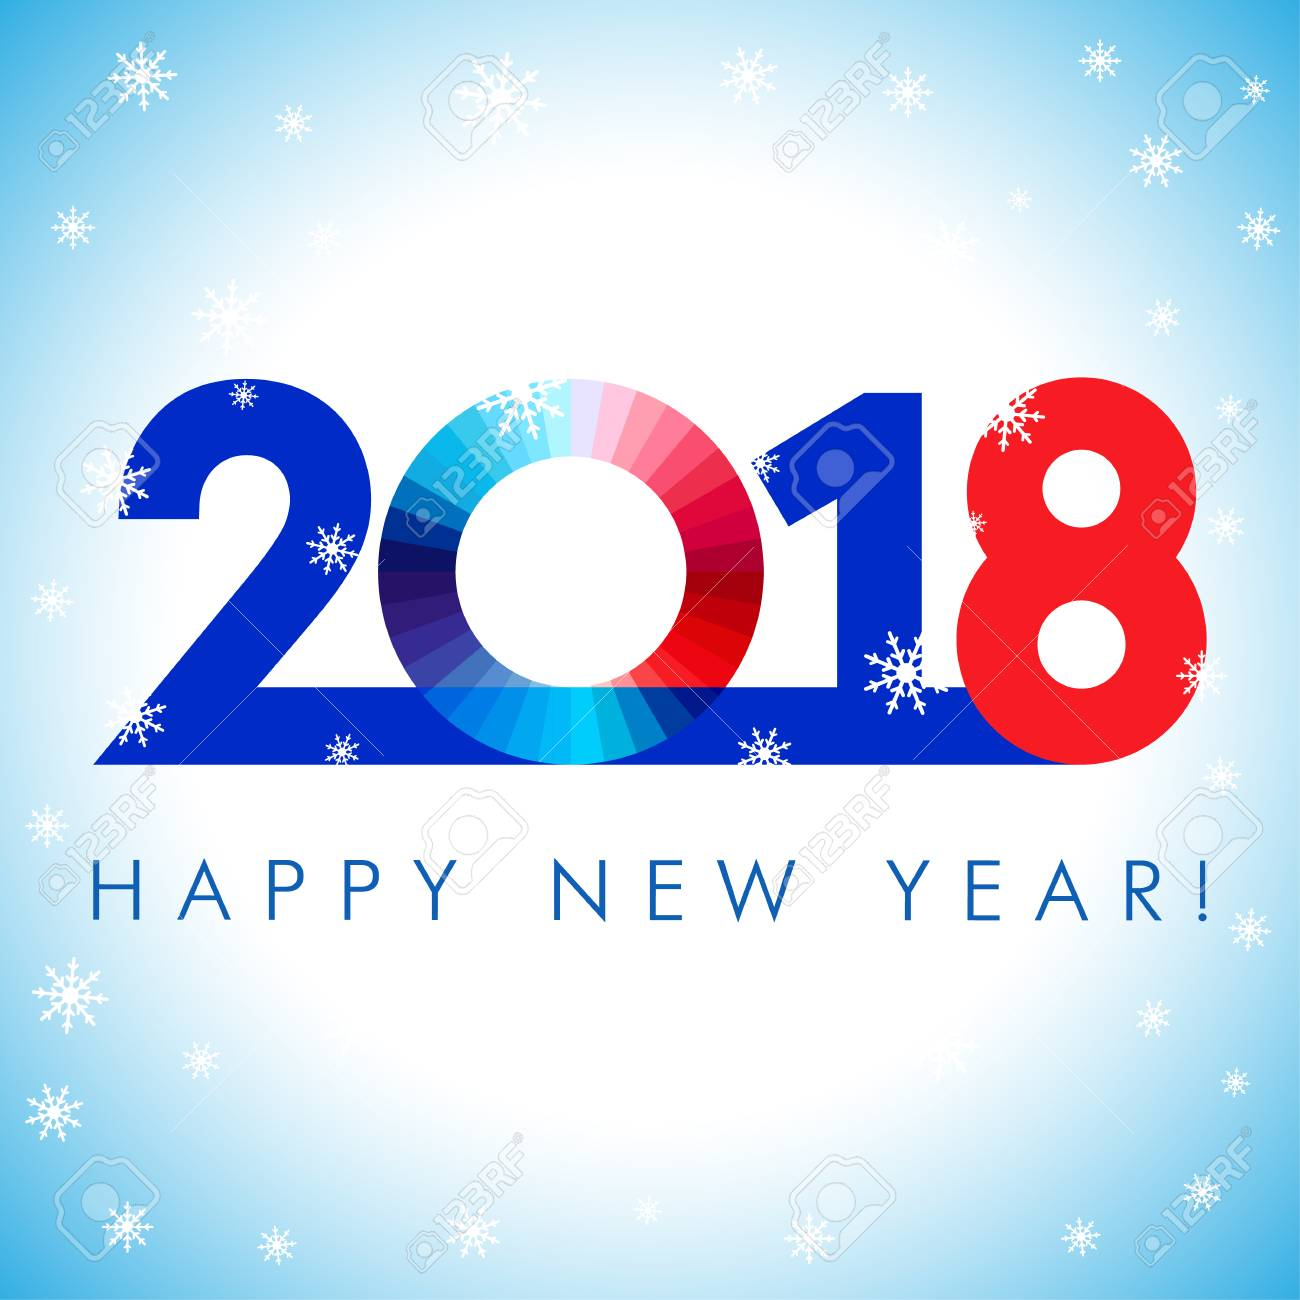 2018 A Happy New Year greetings. Blue, red and white numbers, isolated symbol. Congratulating celebrating colored minimal winter image with set of snowflakes, square background. - 90467232